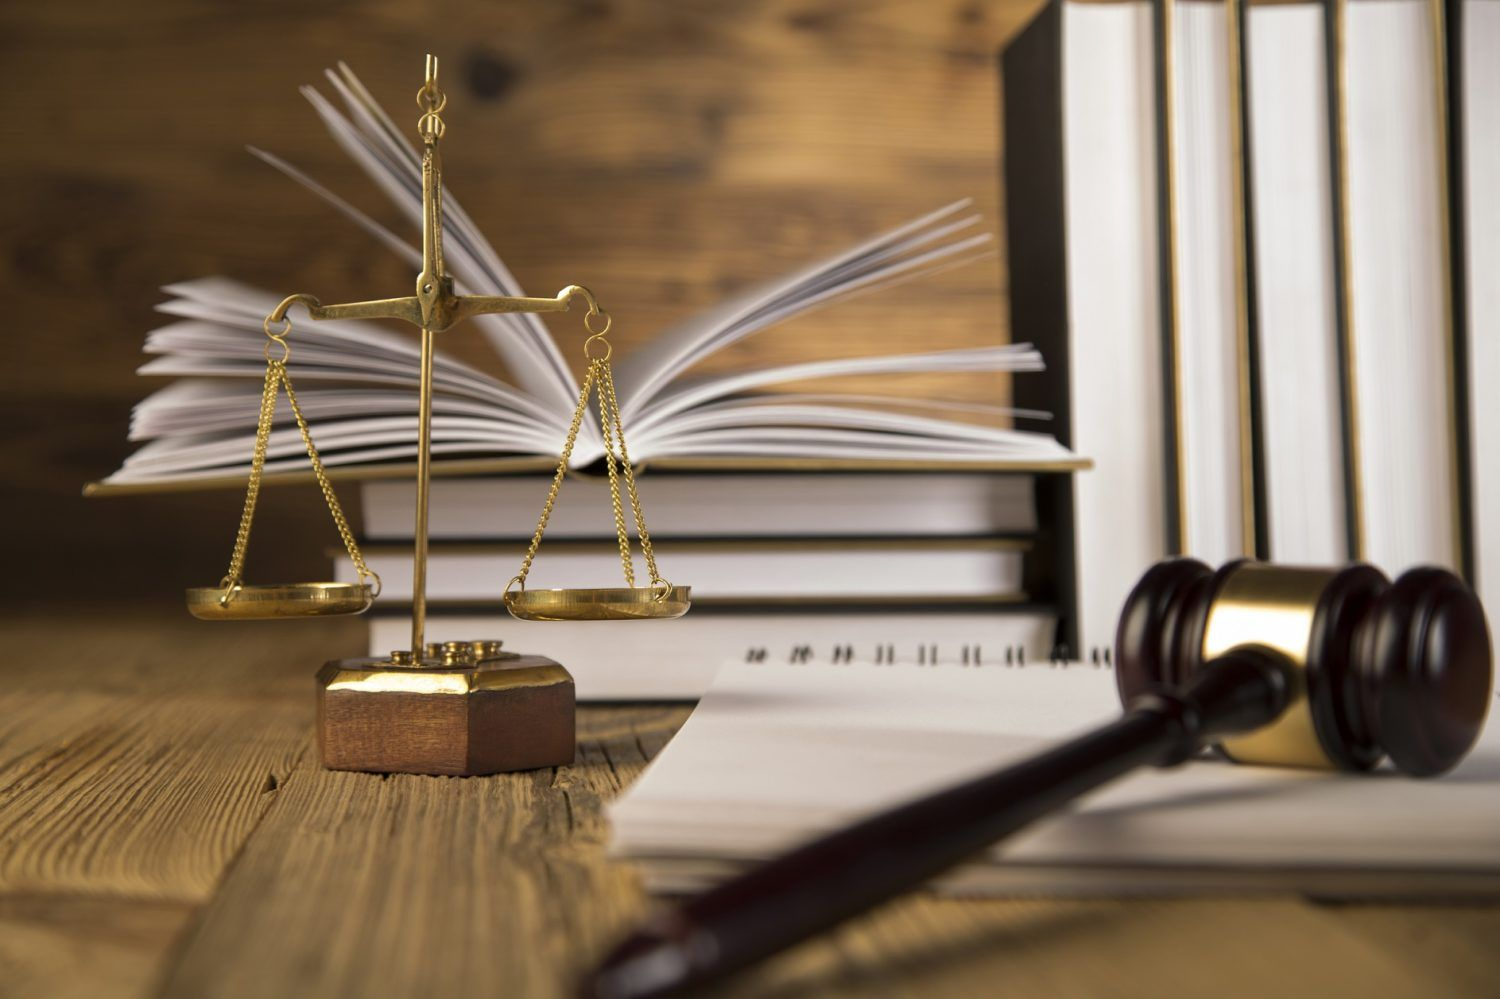 The Job of a Criminal Defense Lawyer